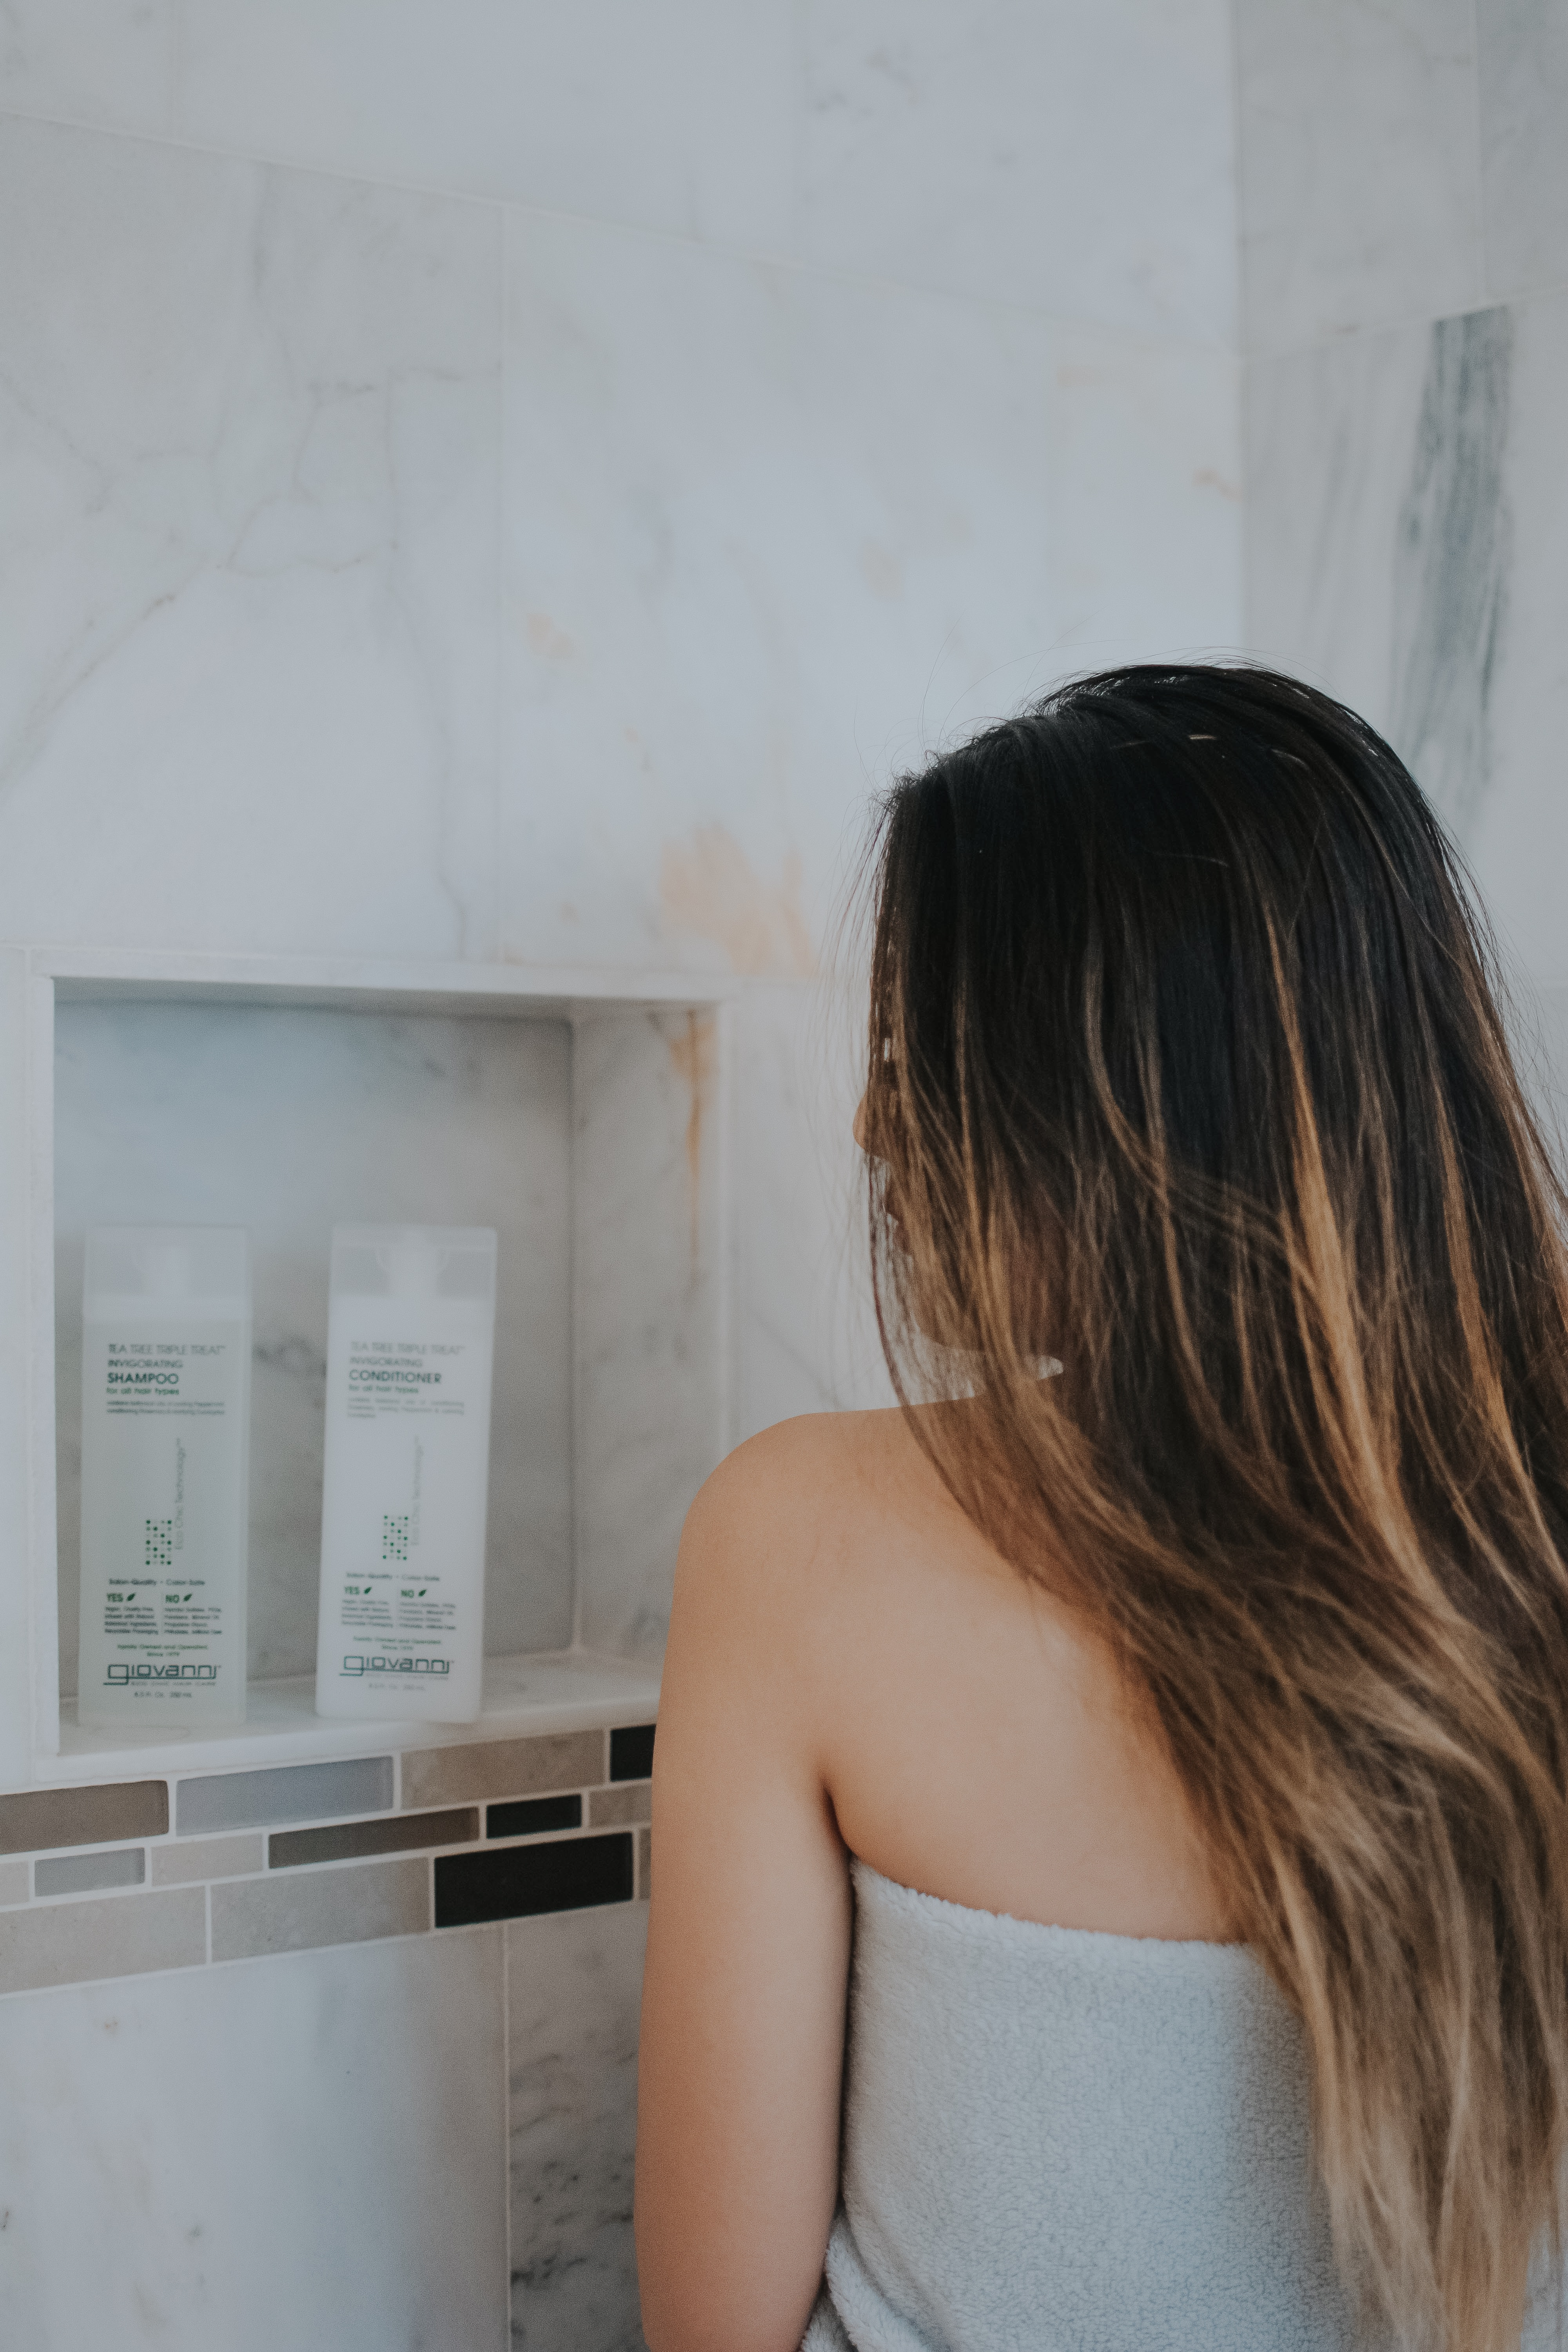 Demi Bang talks about Giovanni Eco Chic Hair Care.